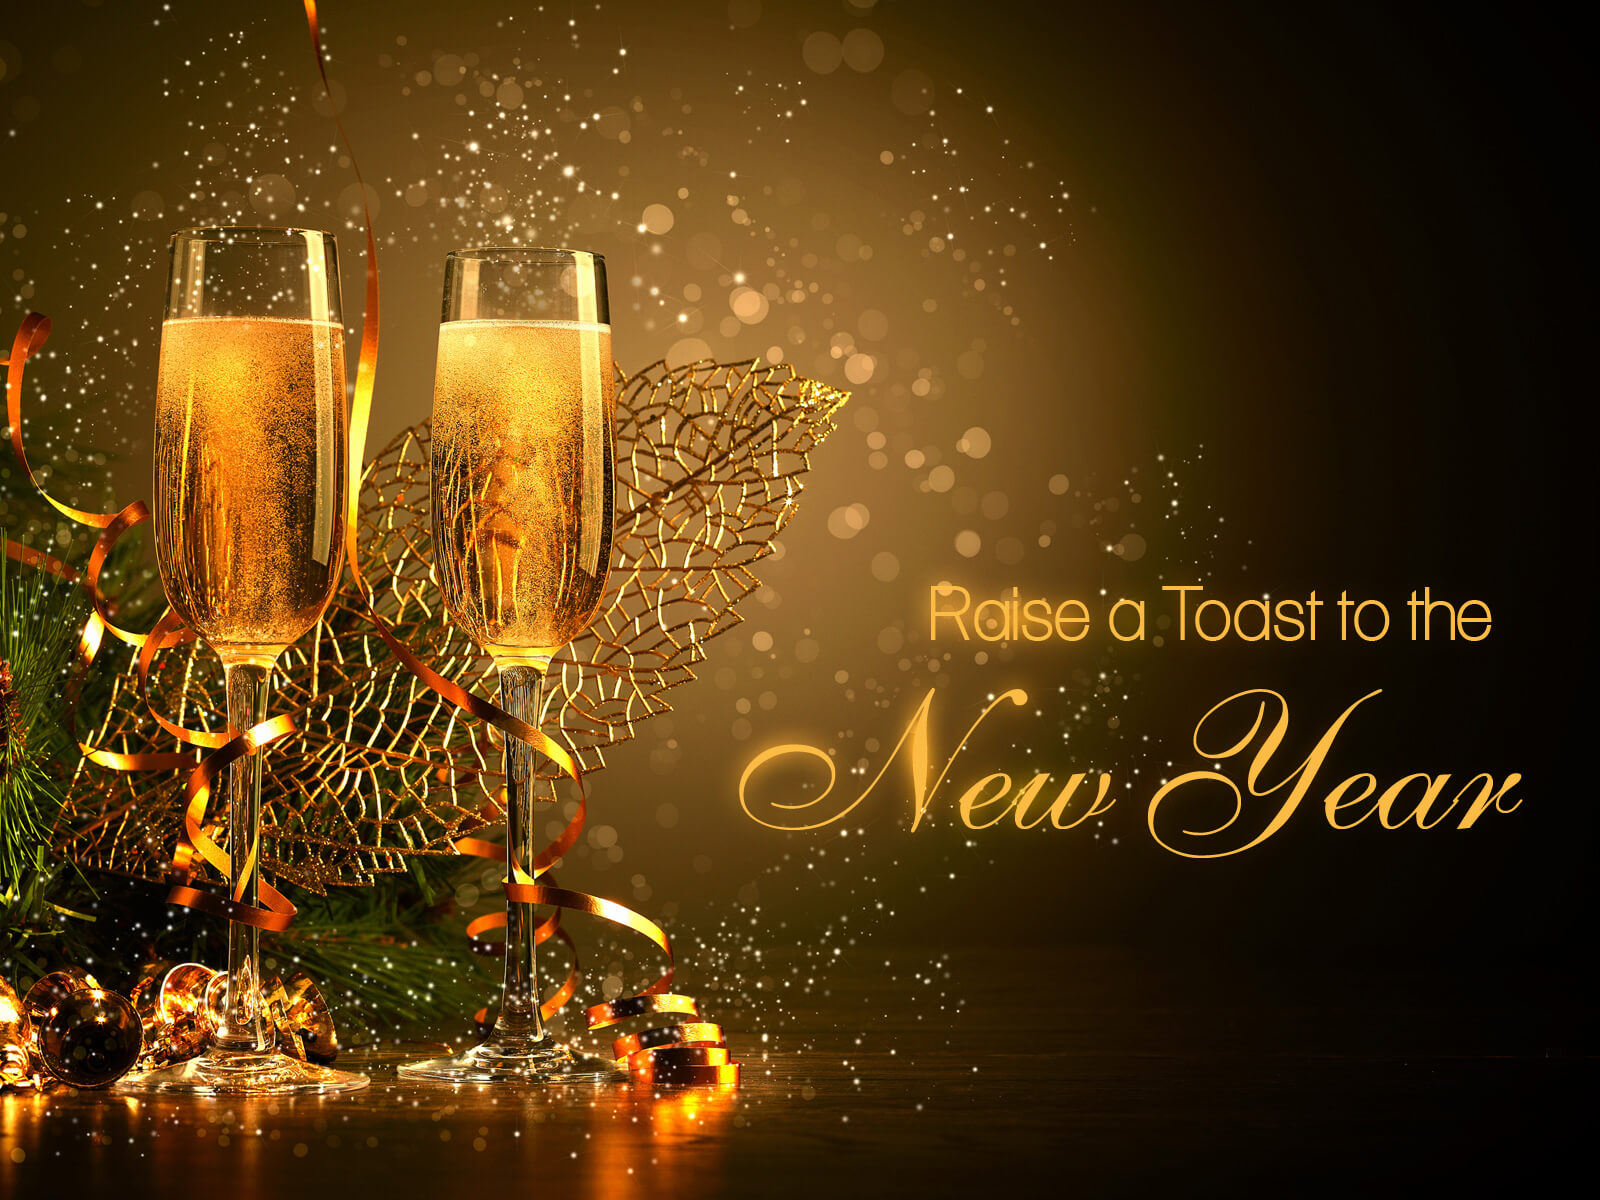 Short New Year Congratulations SMS, Greetings, and Wishes